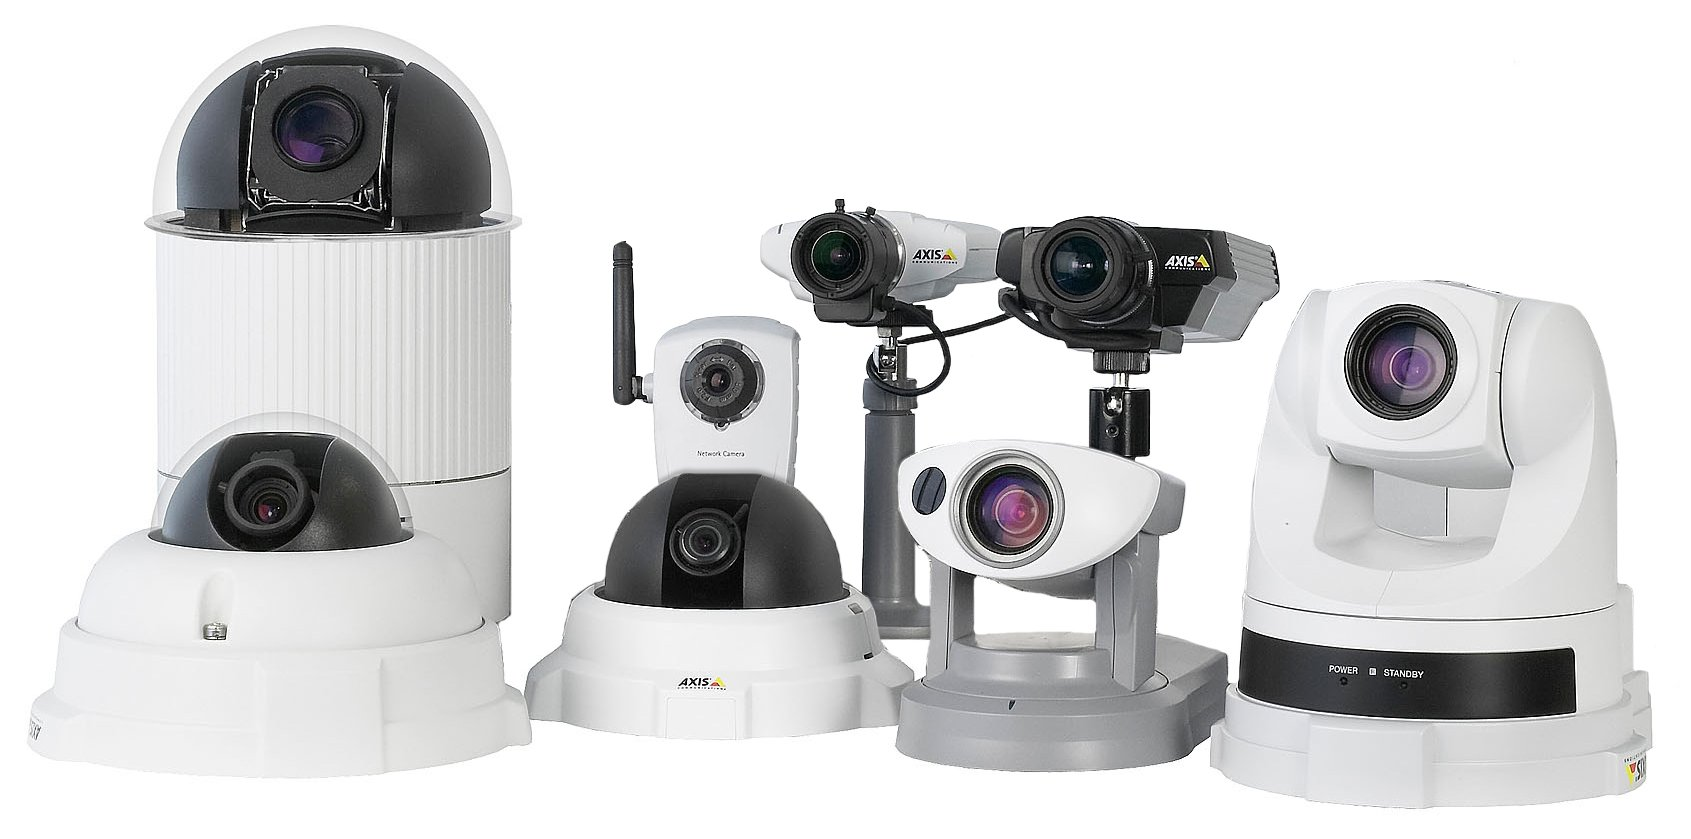 Axis Camera Network Security Cameras Computer And Network Infrastructure